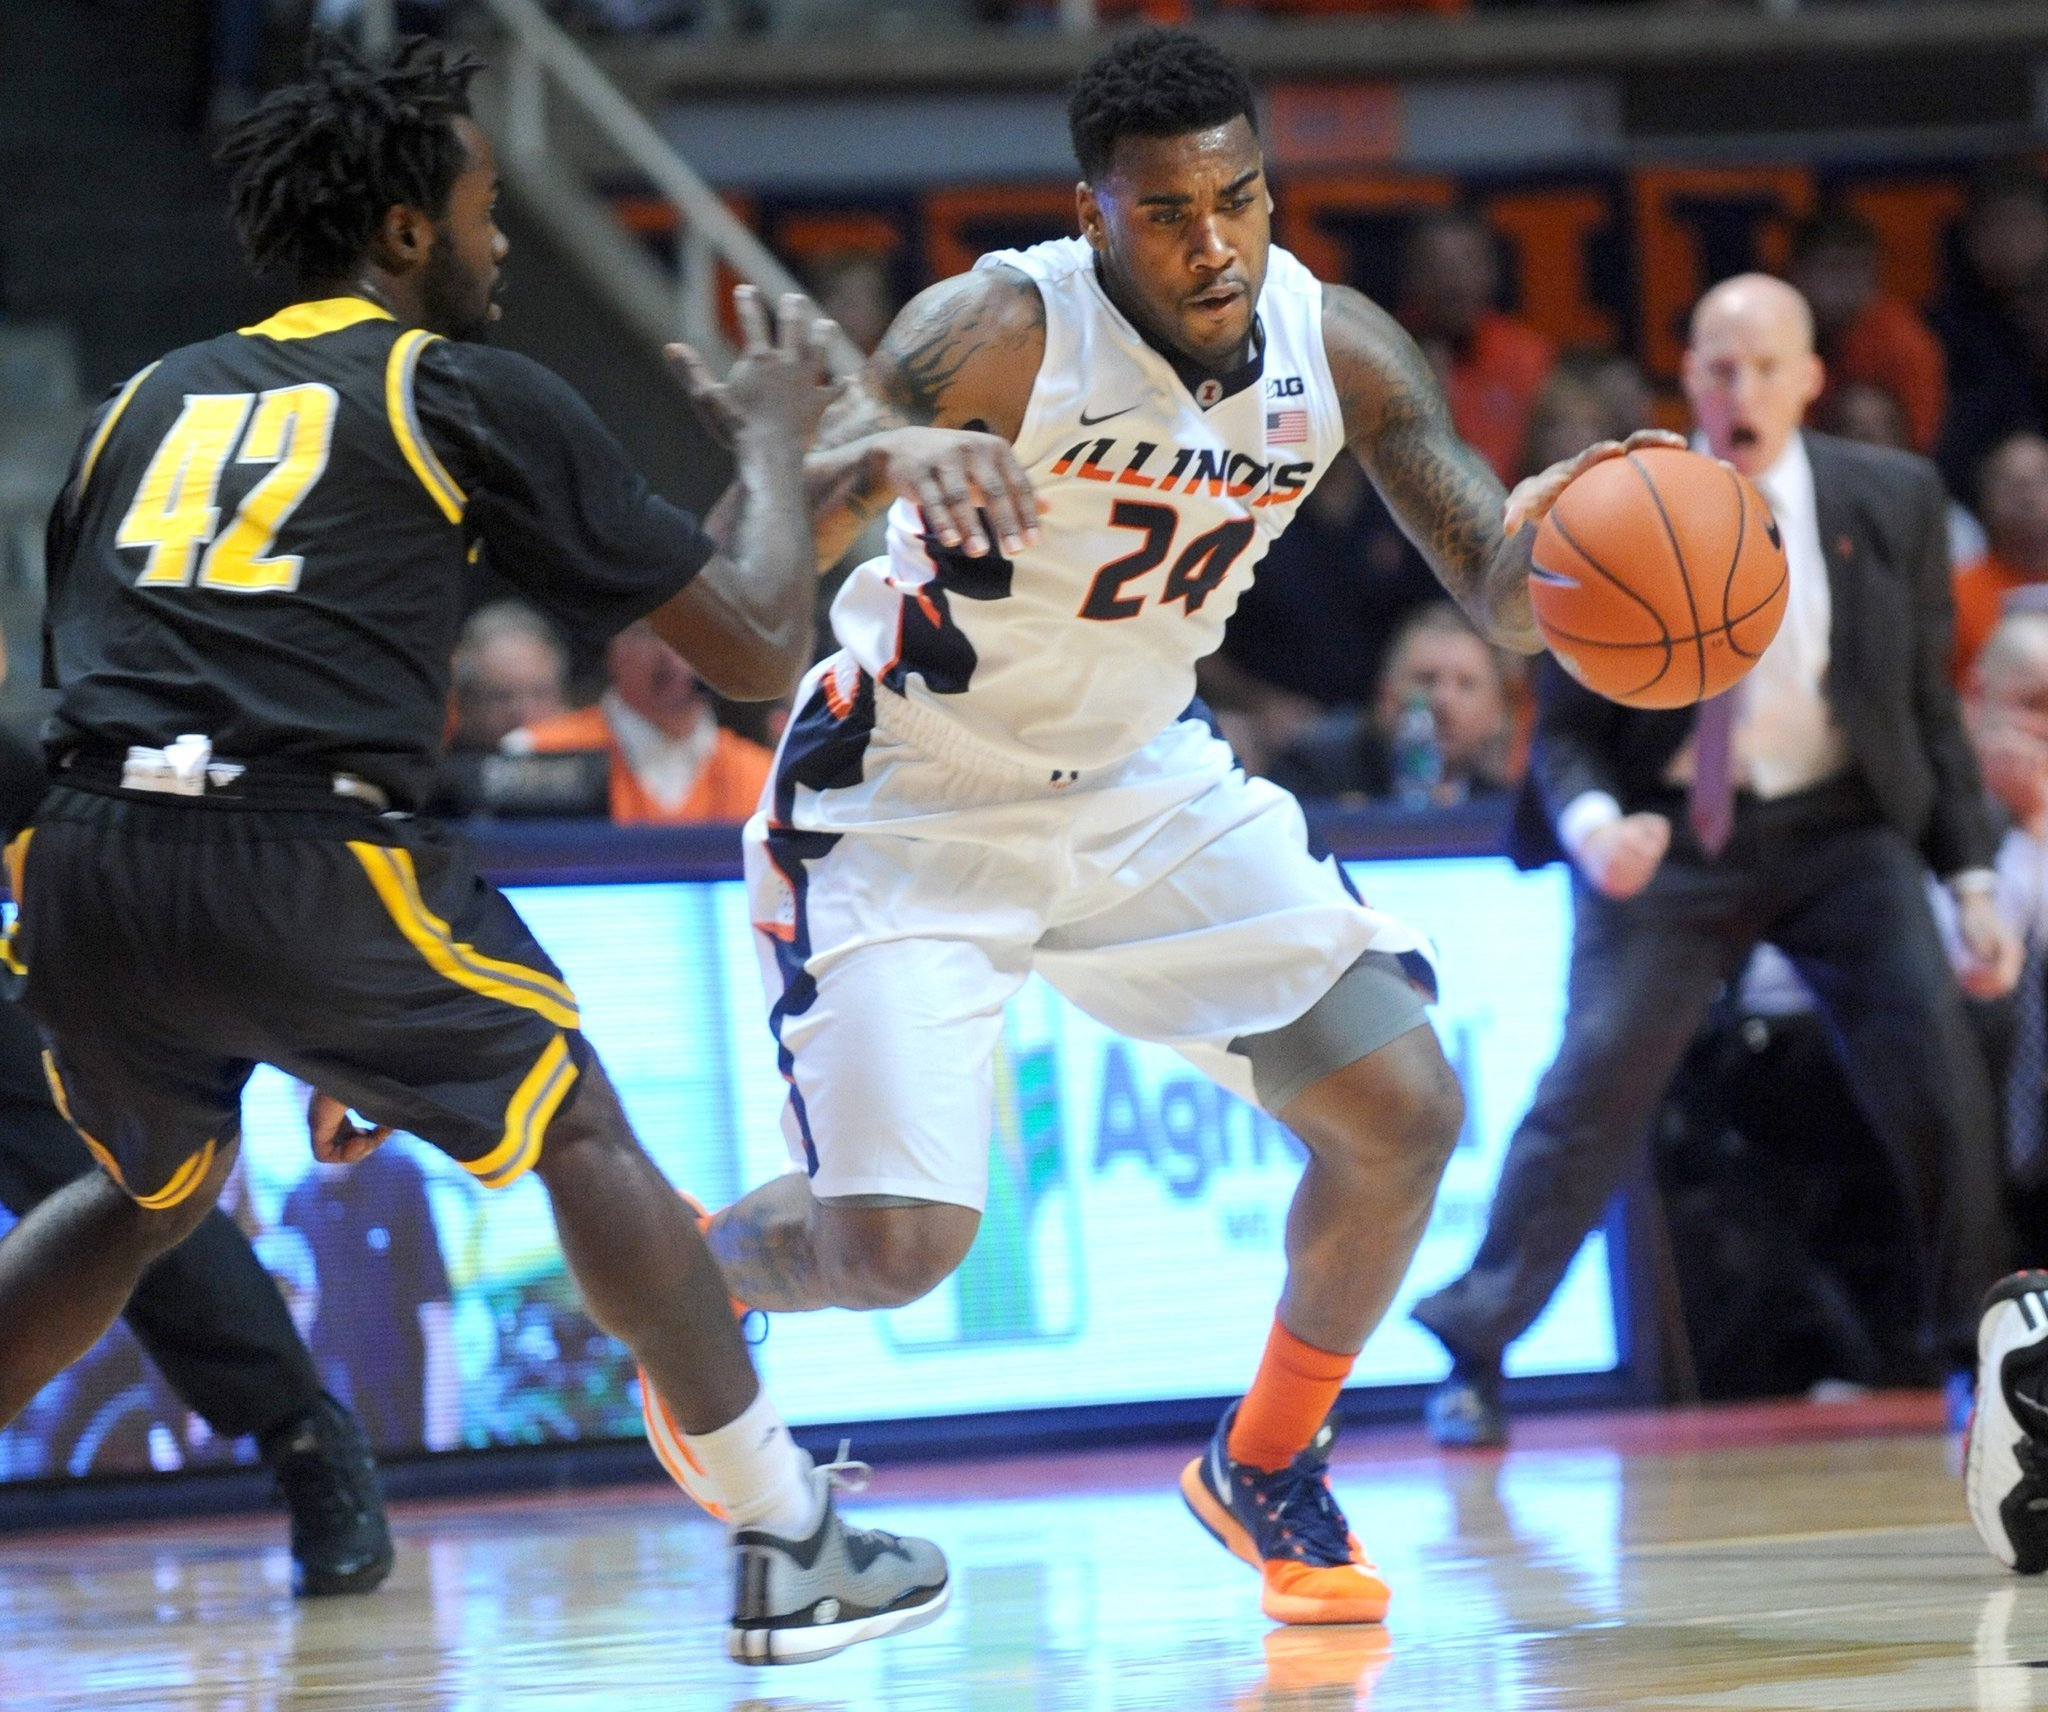 Illinois guard Rayvonte Rice will undergo surgery this week (photo from the Chicago Tribune).